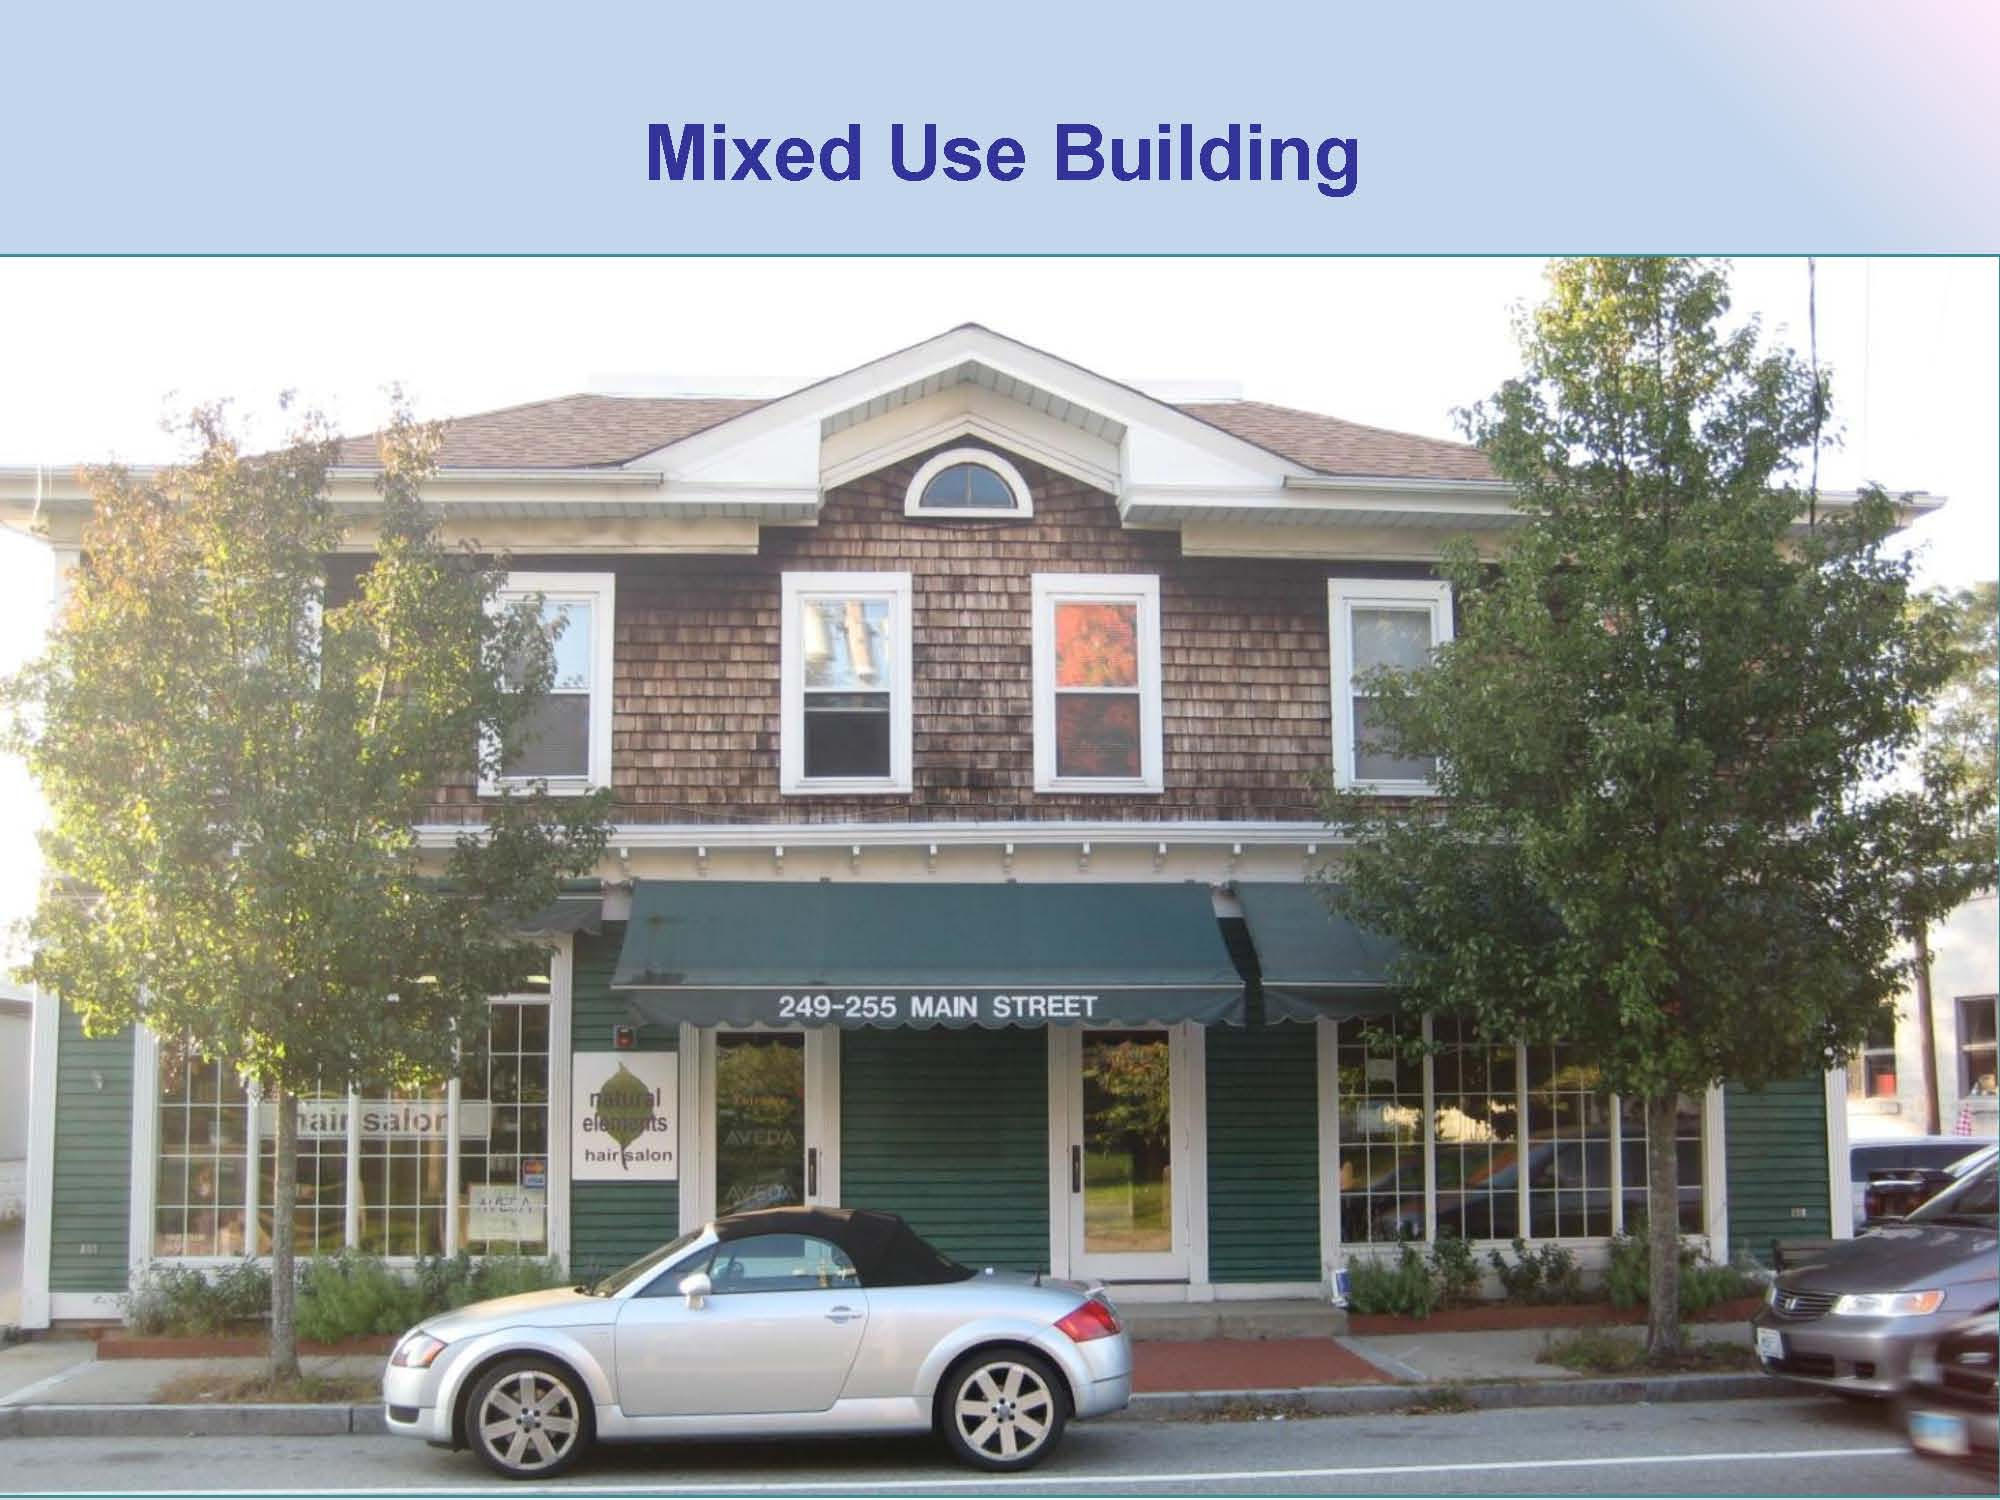 Groton_Mixed-Use_Page_03.jpg